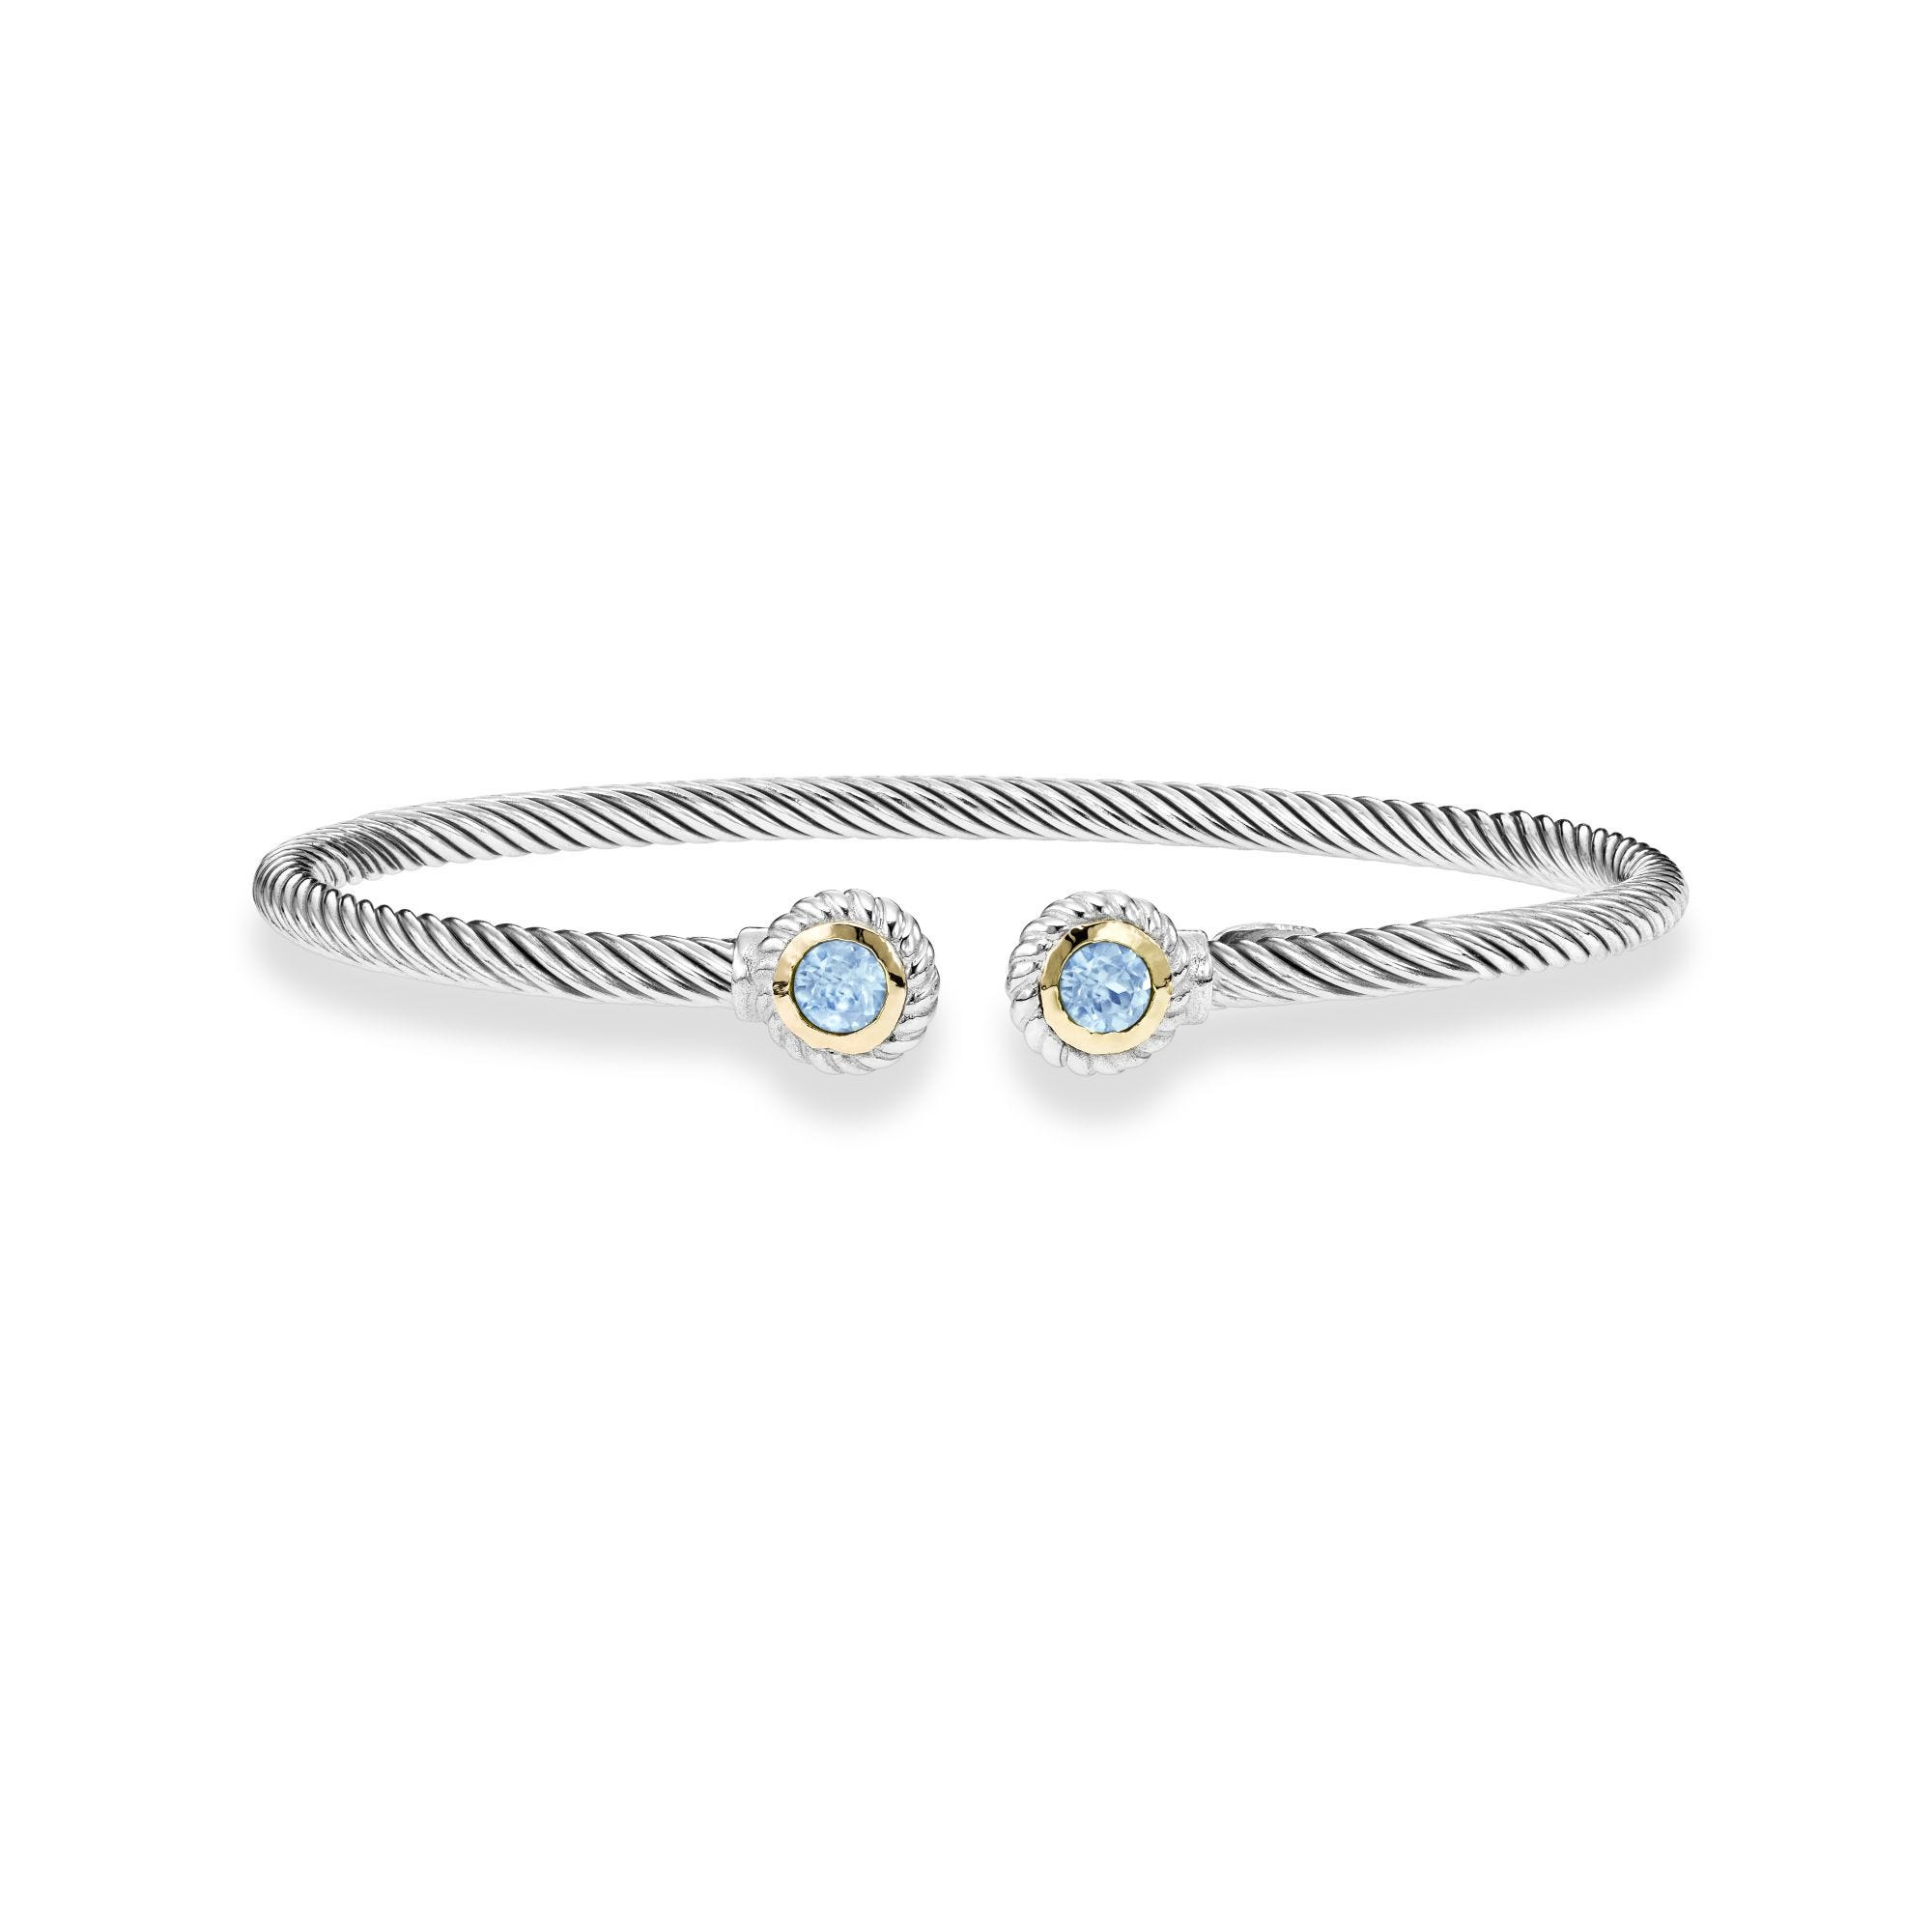 Blue Topaz Textured Cuff Bangle in Sterling Silver